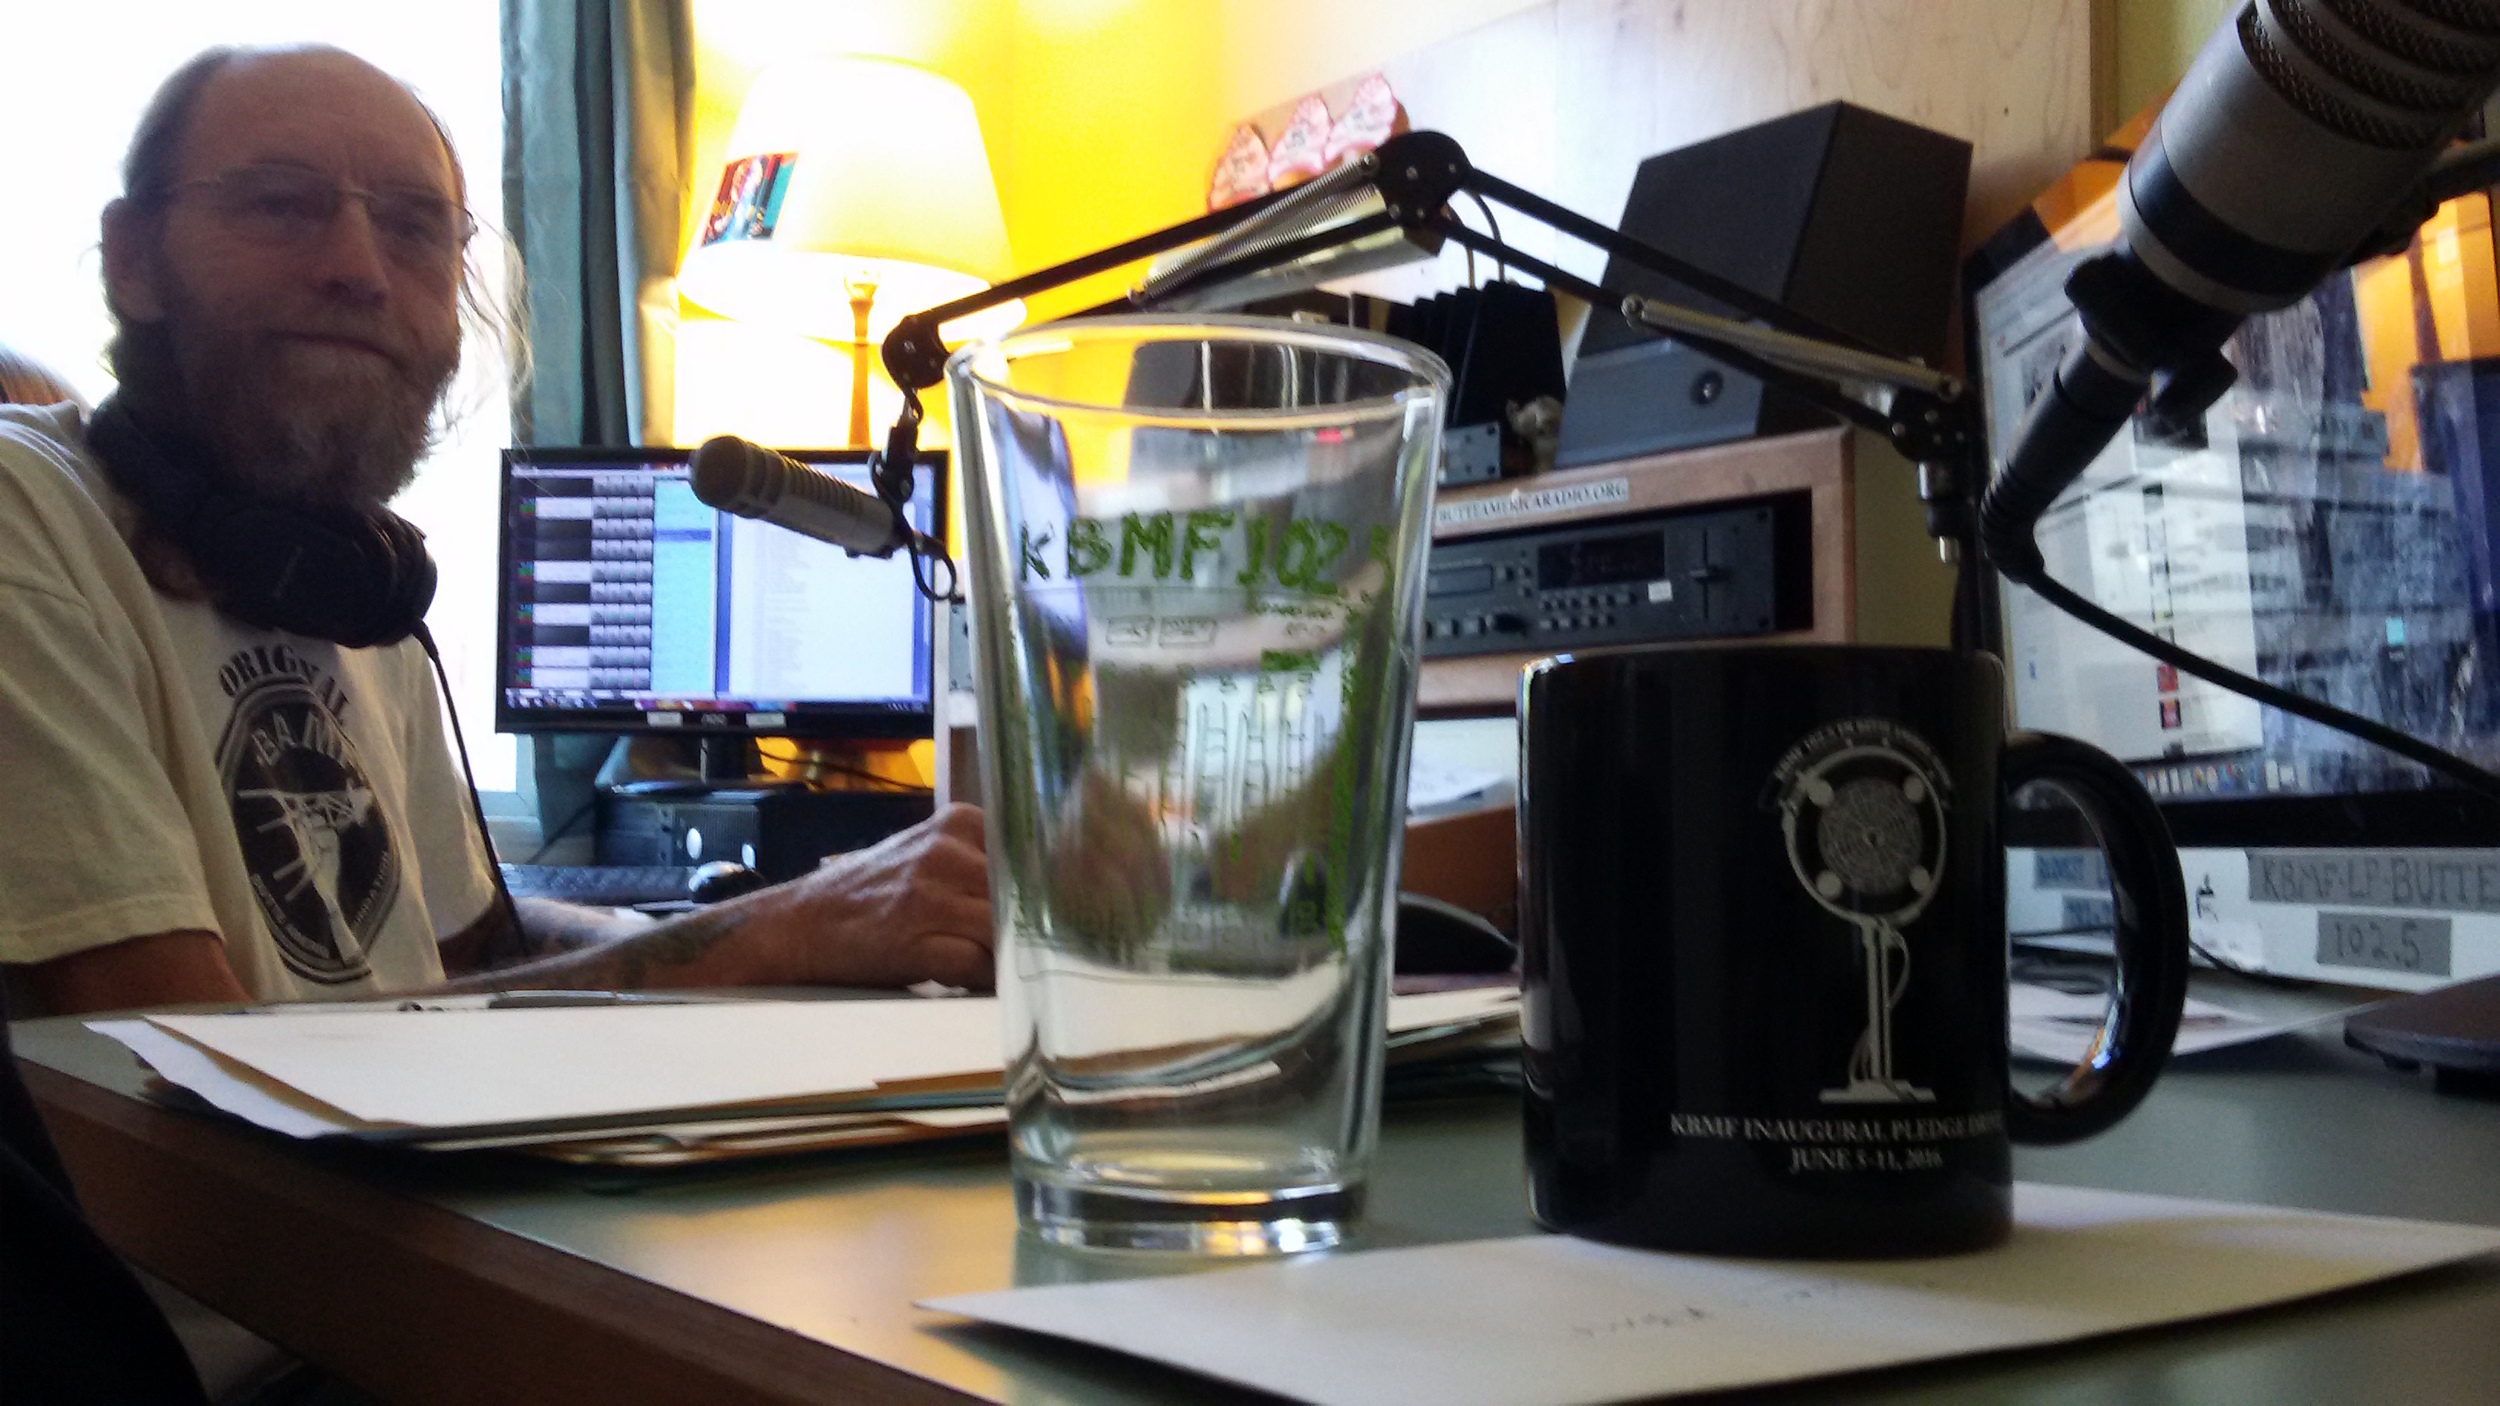 Rockin' Rodney kicks off the pledge drive with early morning music. Check out that KBMF merch!